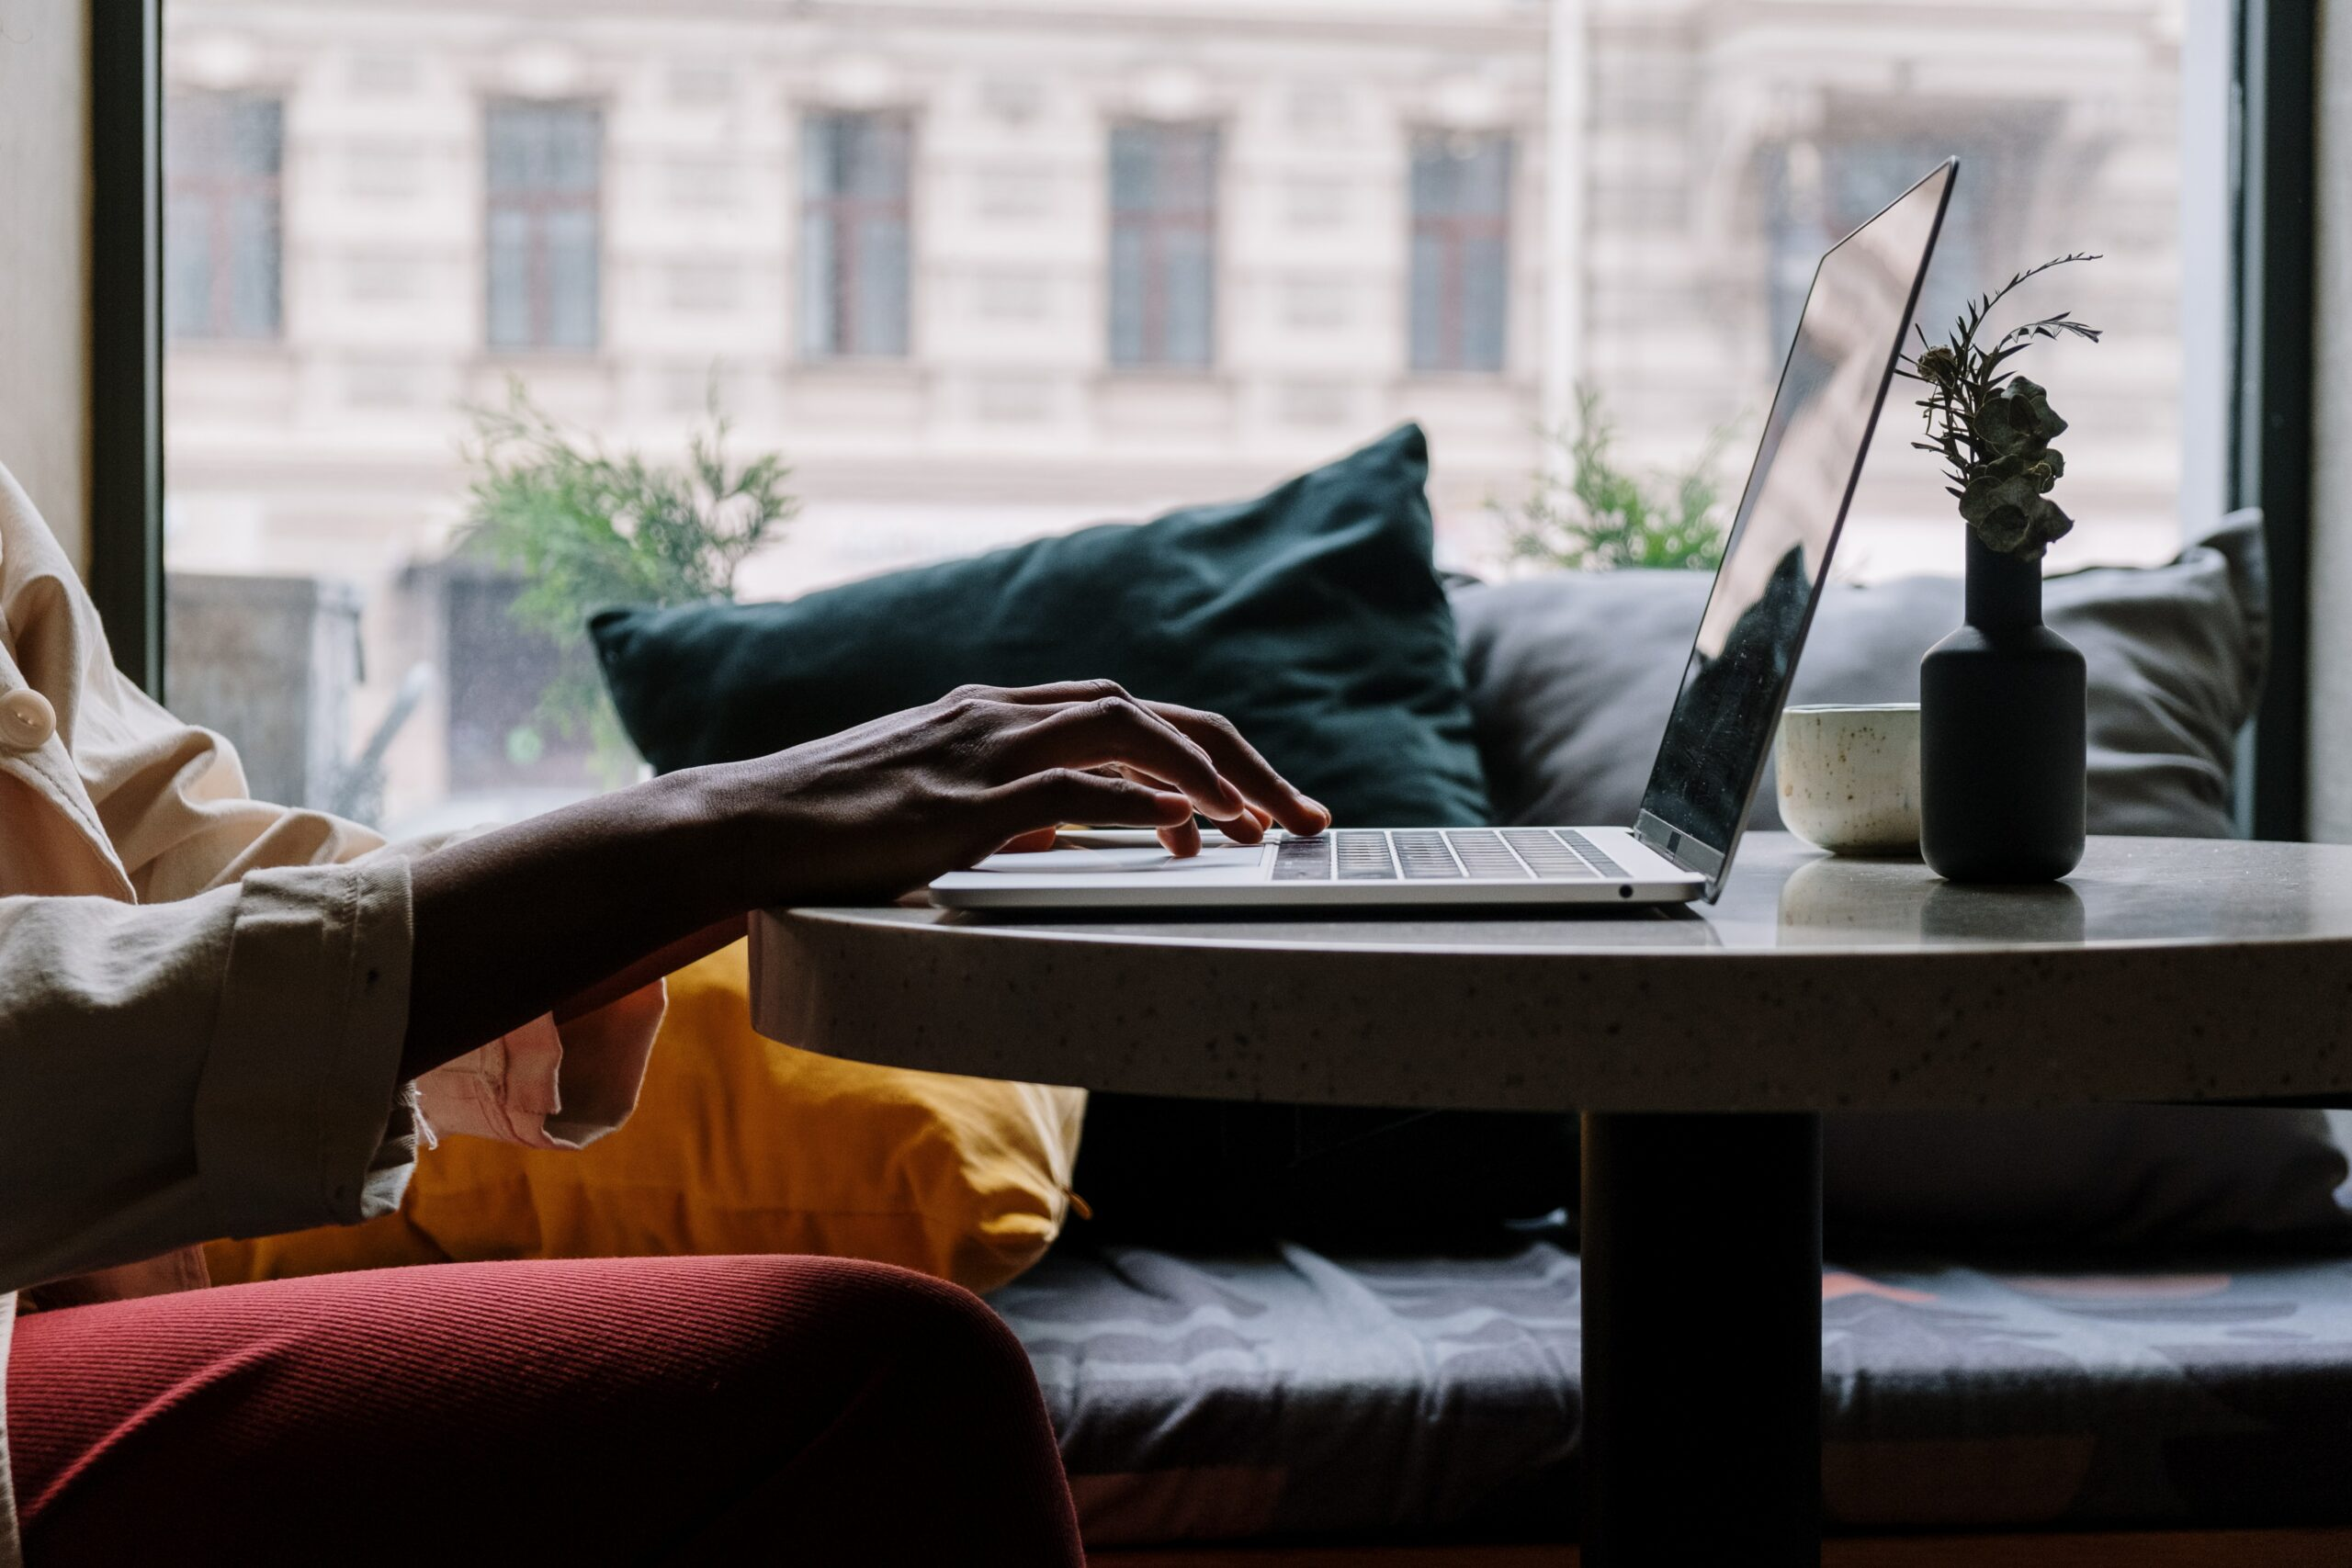 Person sat on sofa using laptop